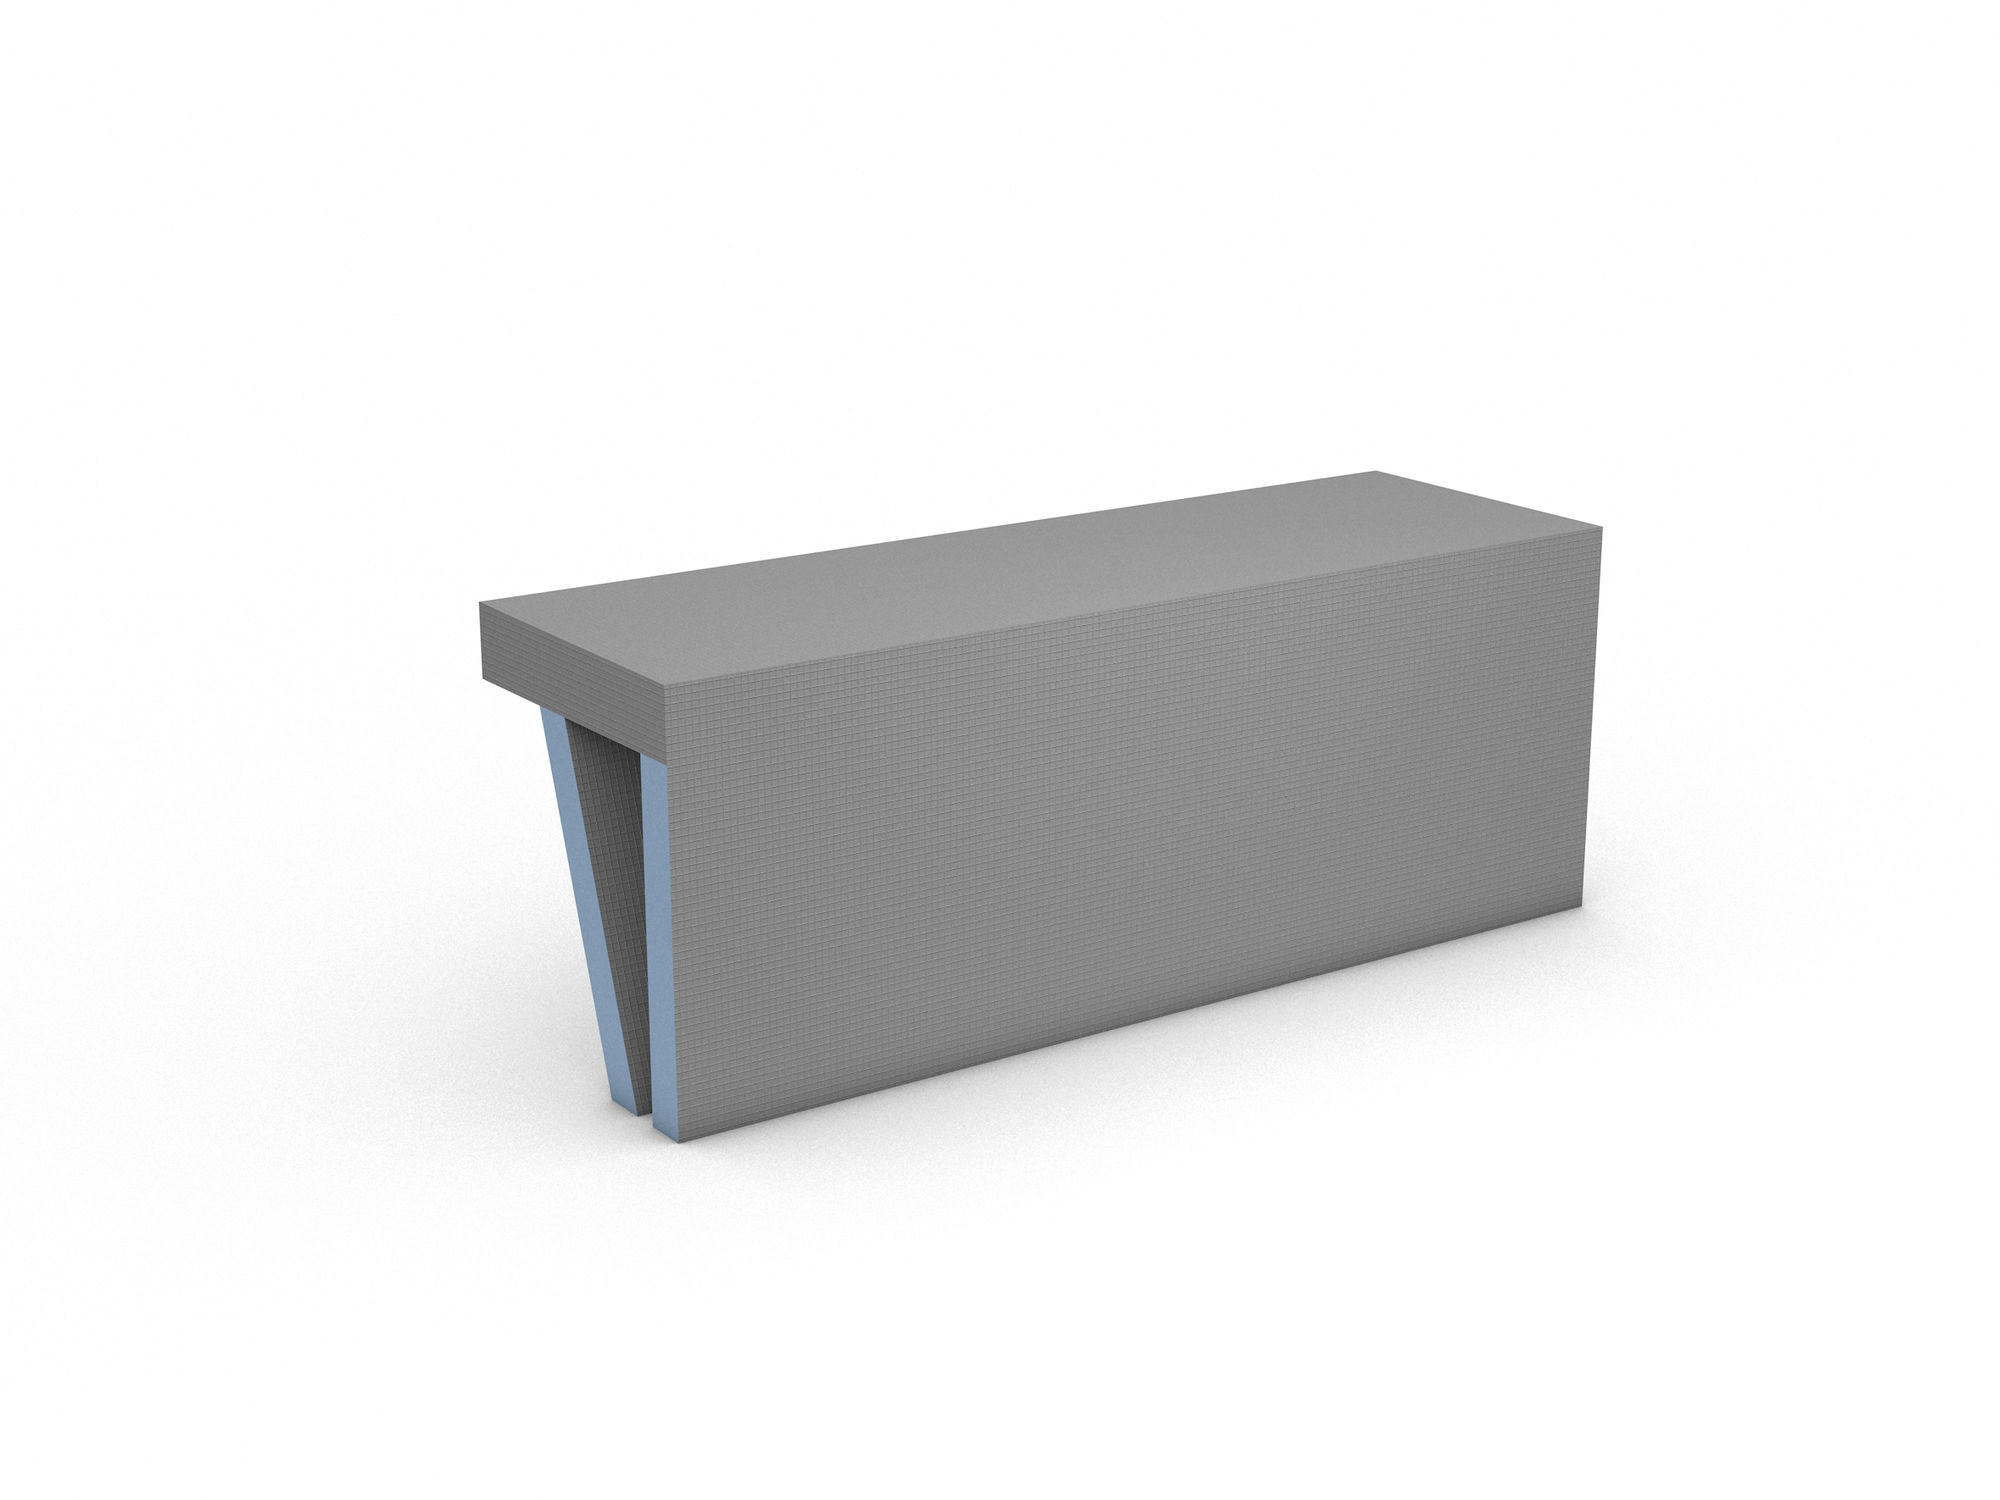 Marvelous Fixed Shower Seat Wall Mounted Composite Commercial Alphanode Cool Chair Designs And Ideas Alphanodeonline